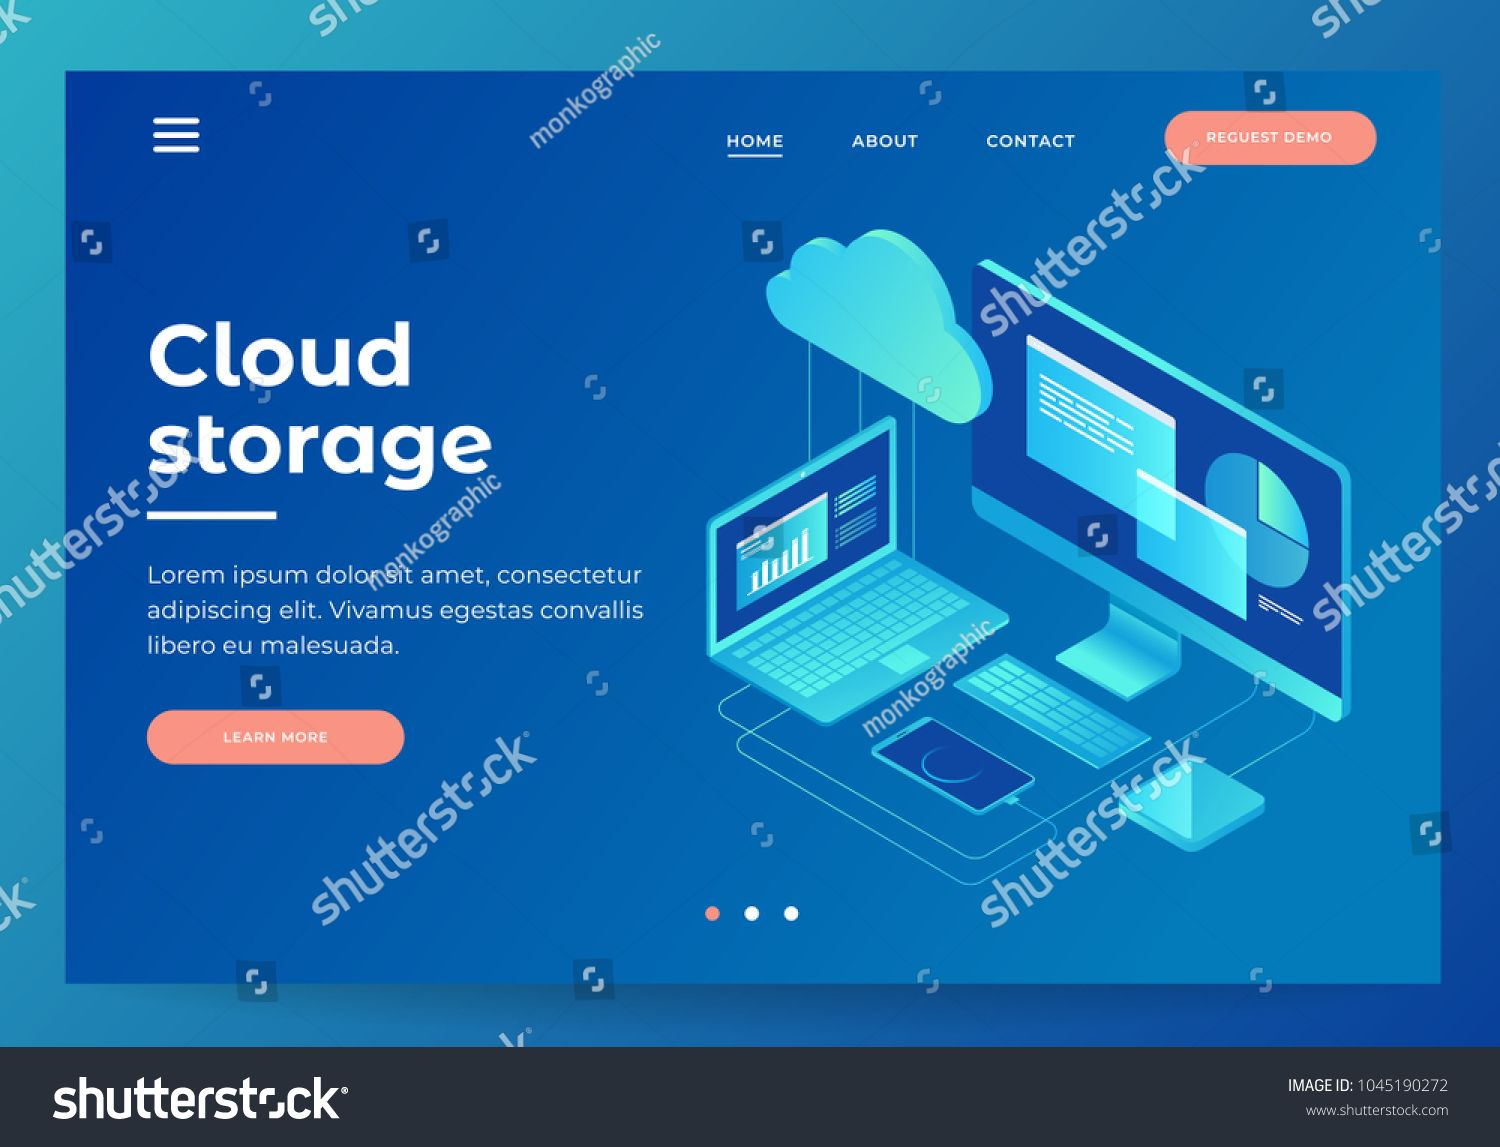 Concepts Cloud Storage Header For Website With Computer Laptop Smartphone On Blue Background Design For Lan In 2020 Graphic Design Trends Template Design Isometric